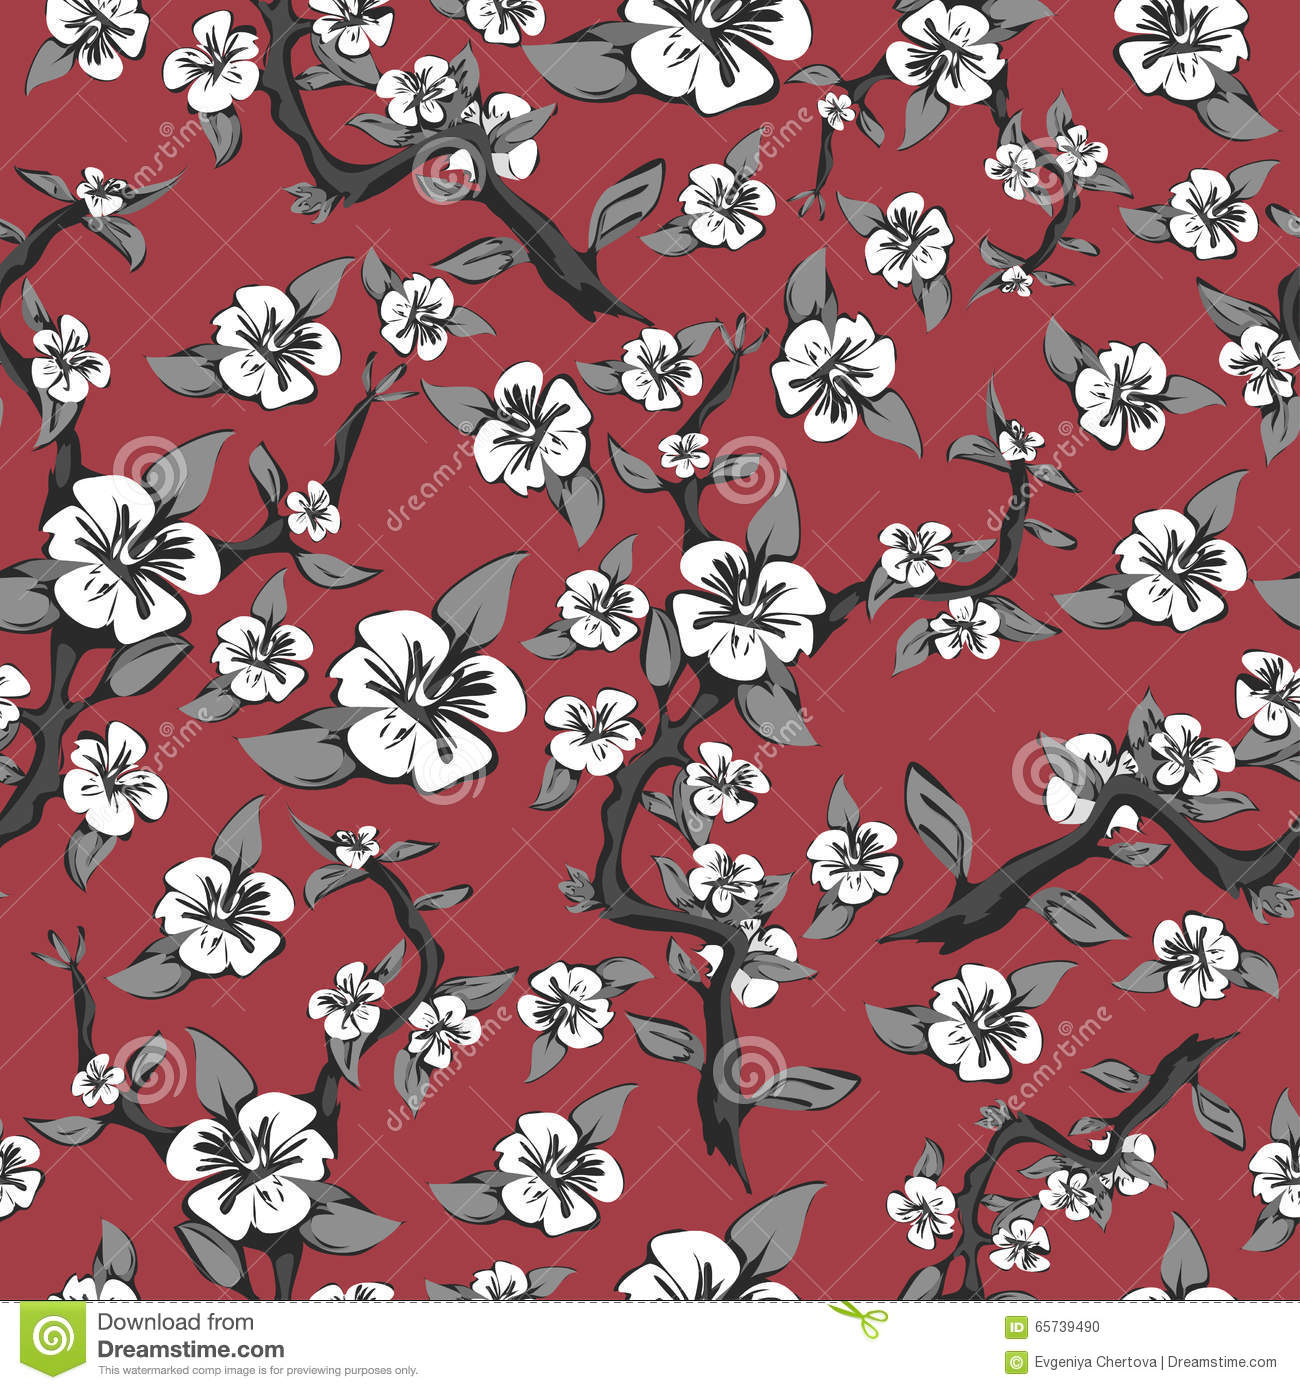 Seamless pattern of branches and white flowers on a pink apple background branches flowers illustration pattern pink seamless vector white dhlflorist Choice Image